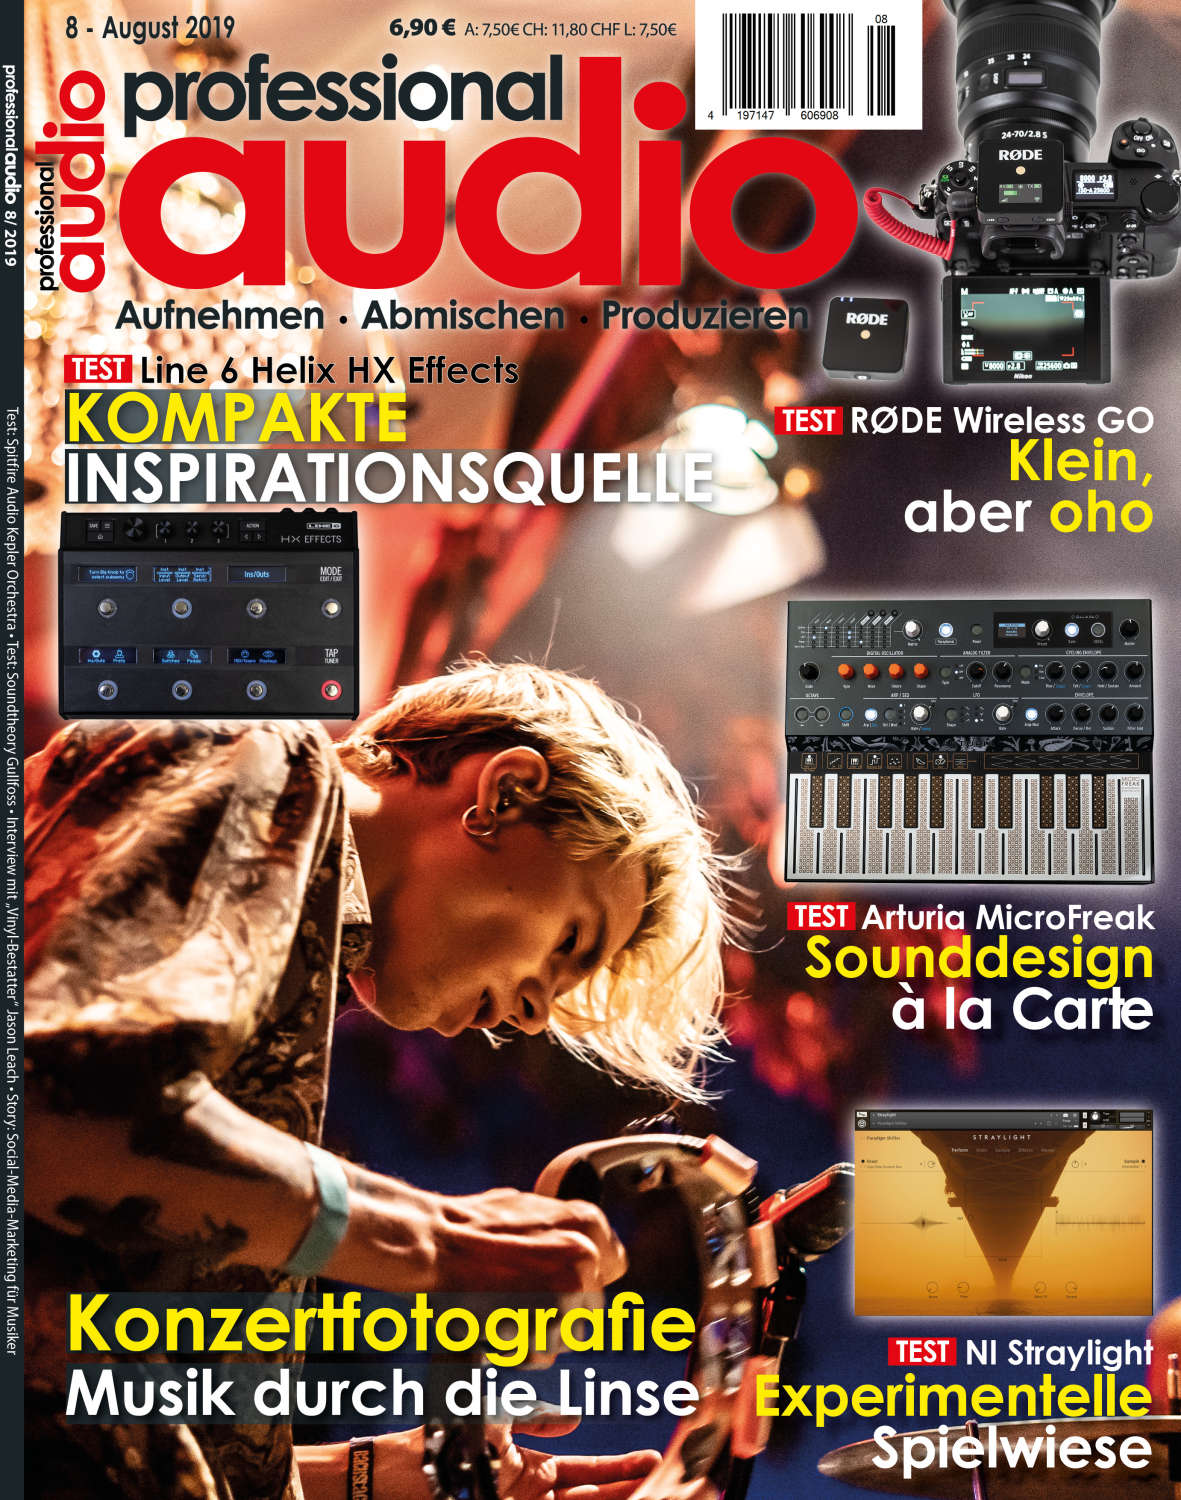 Professional audio 08/2019